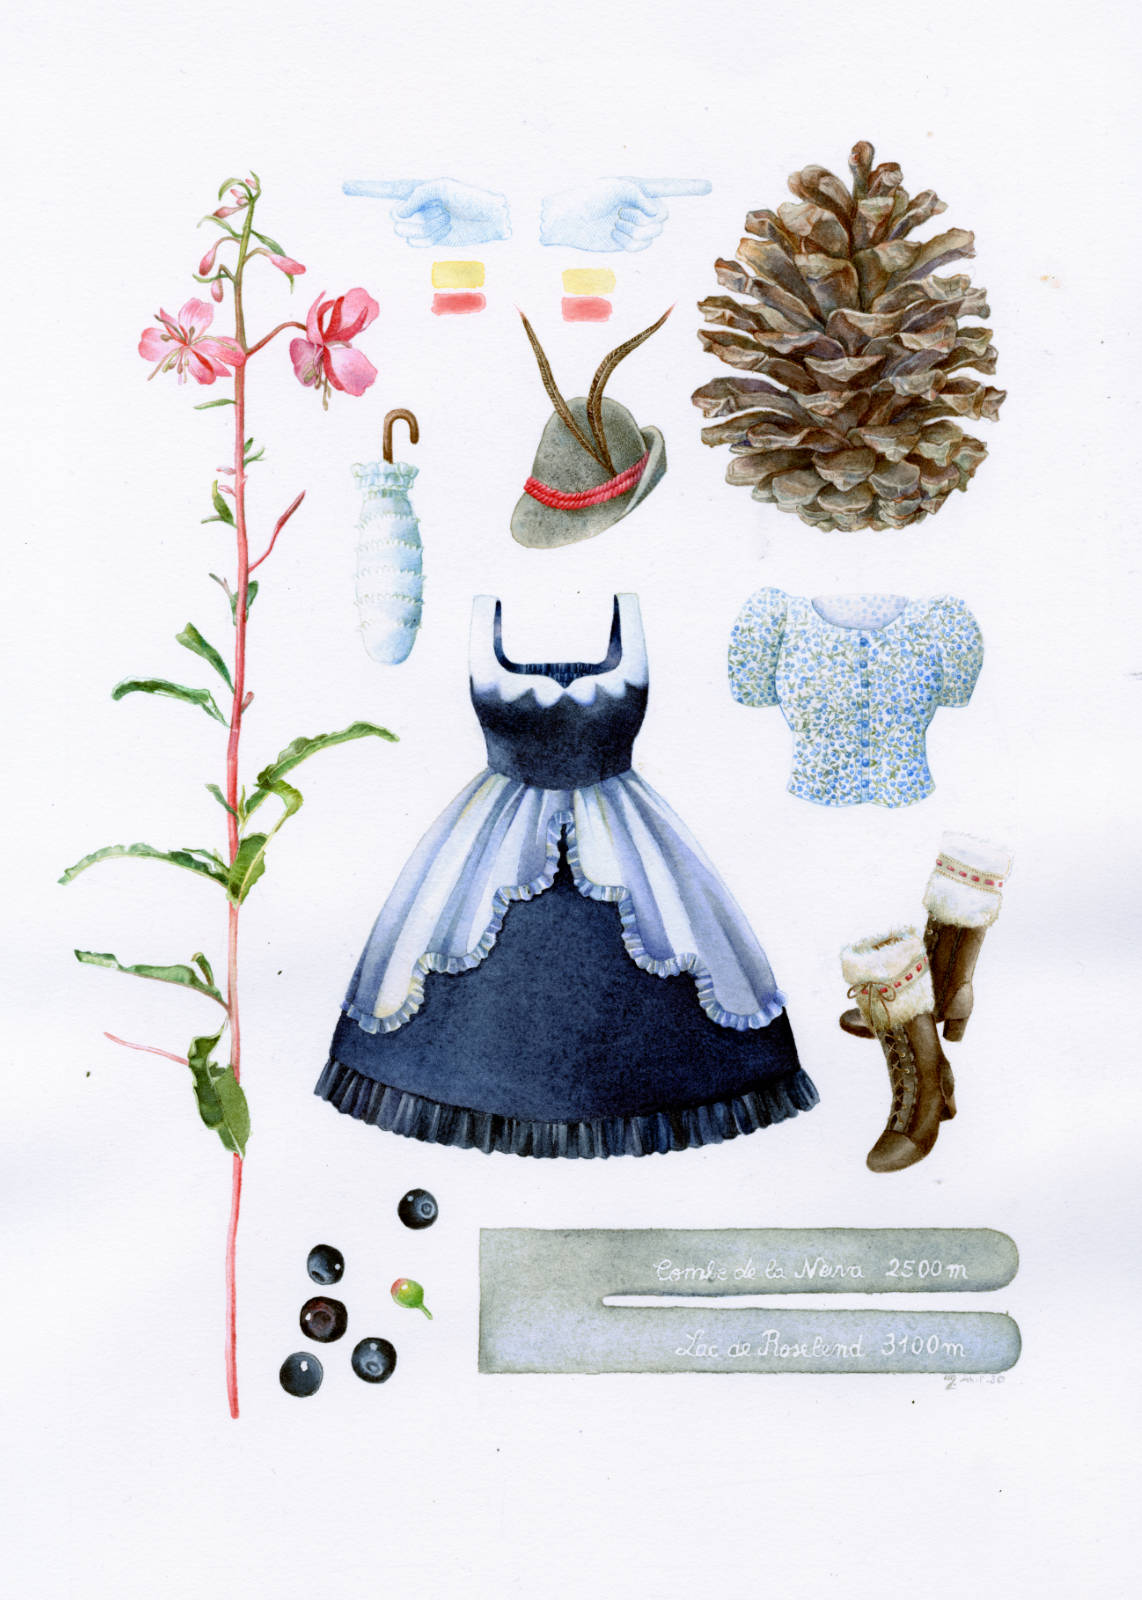 Technical illustration of a herbarium made up with fashionable lolita clothing and an alpine theme : a giant pine cone, blueberries and a blueberry print in a shirt, an austria felt hat and a pink mountain flower.